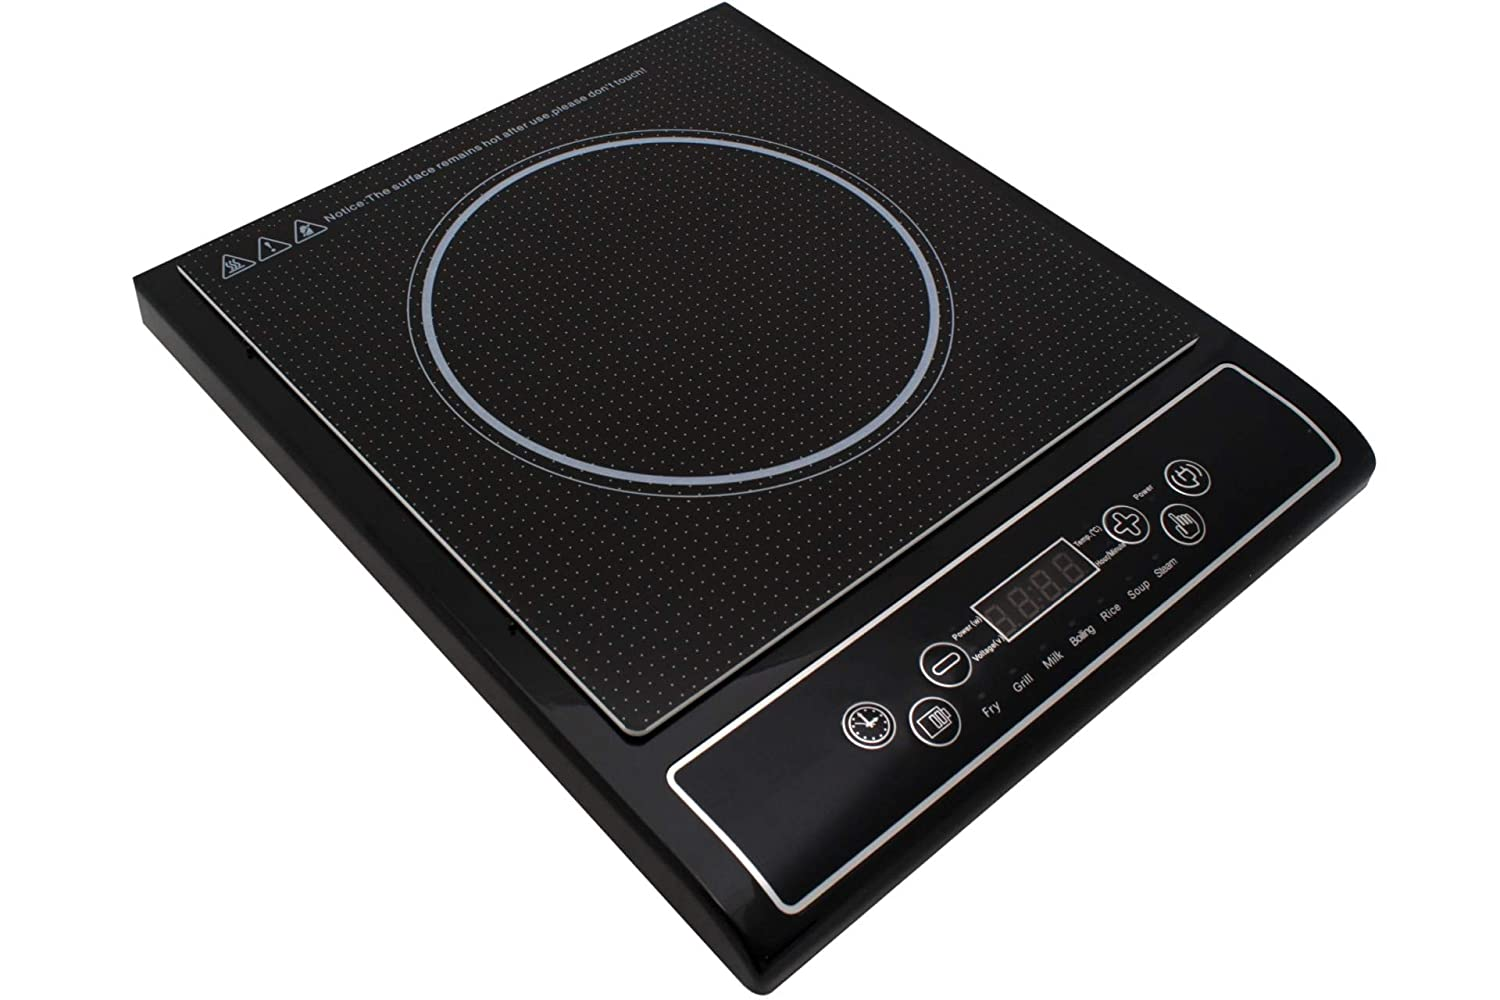 Induktion Kochplatte Herdplatte Induktionskochplatte 2000 Watt Led Display Timerfunktion COOK TOP